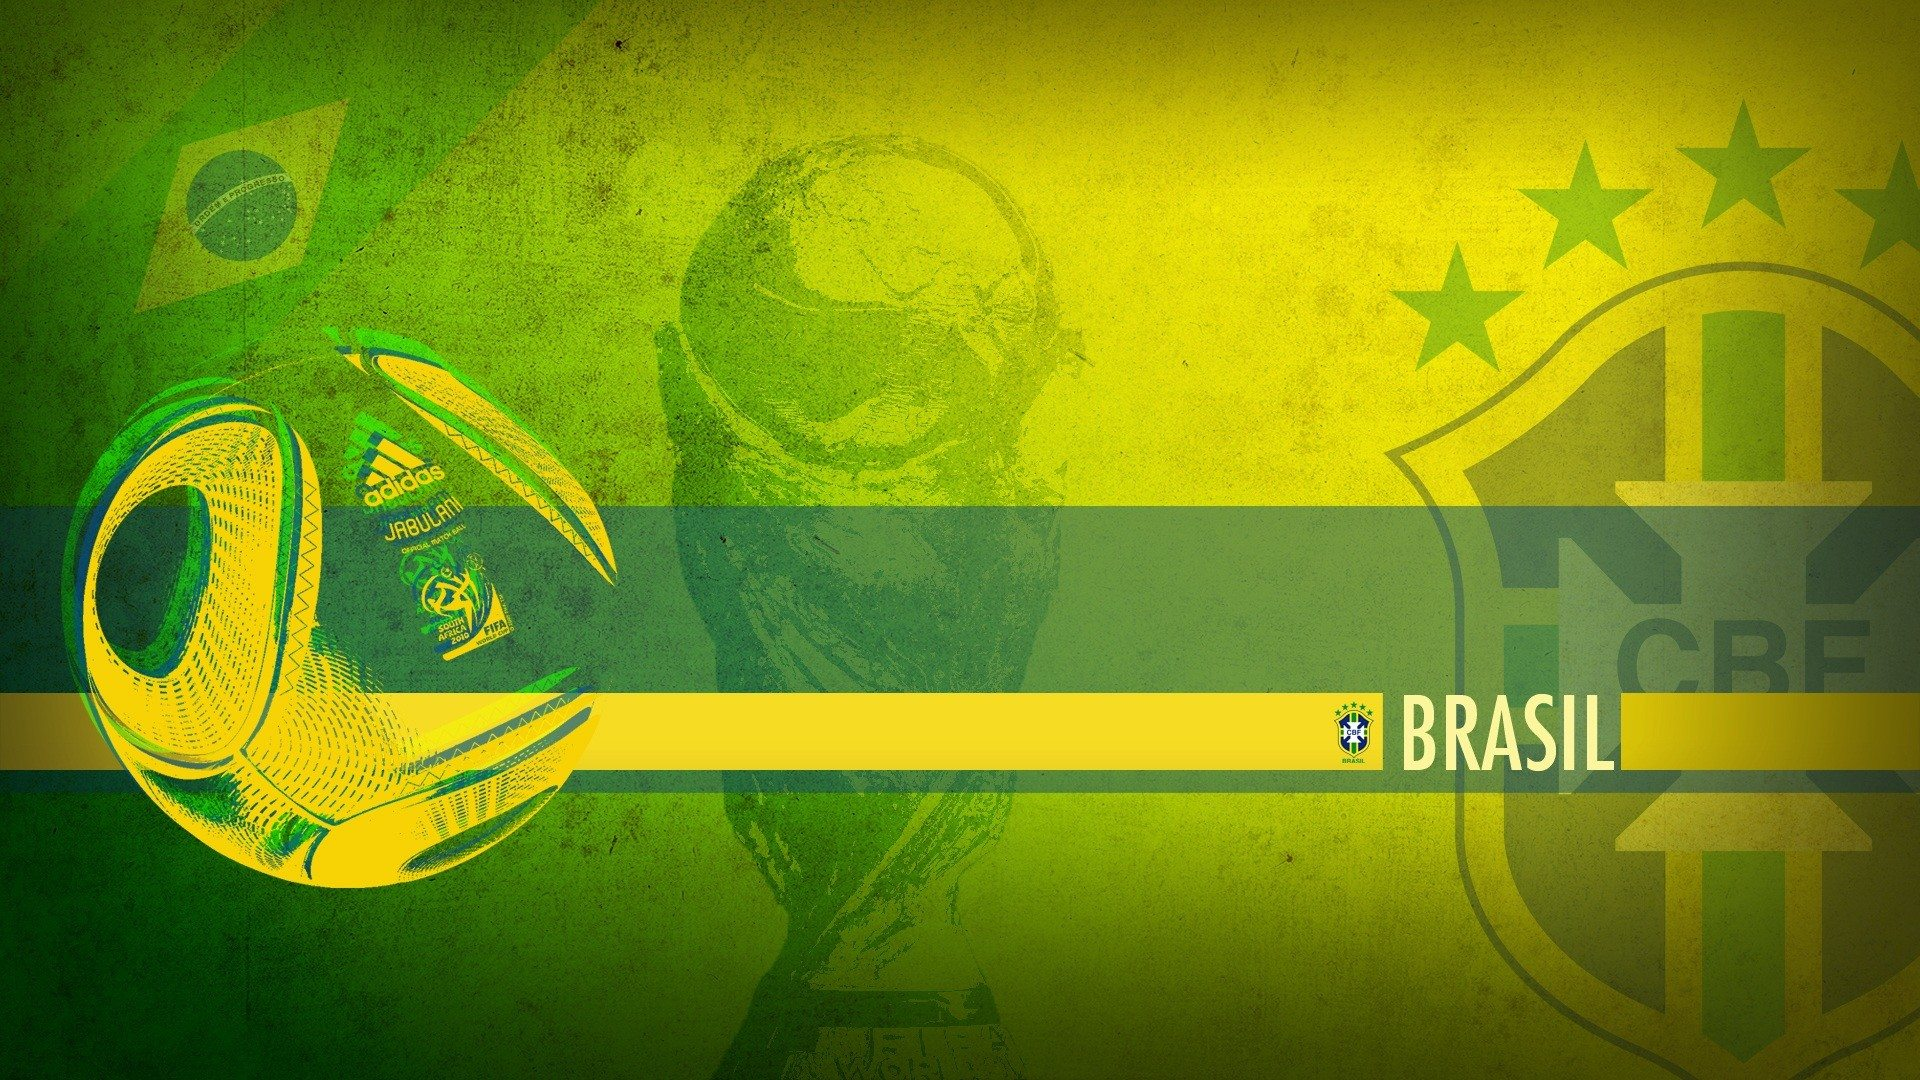 Brazil FIFA World Cup Wallpapers